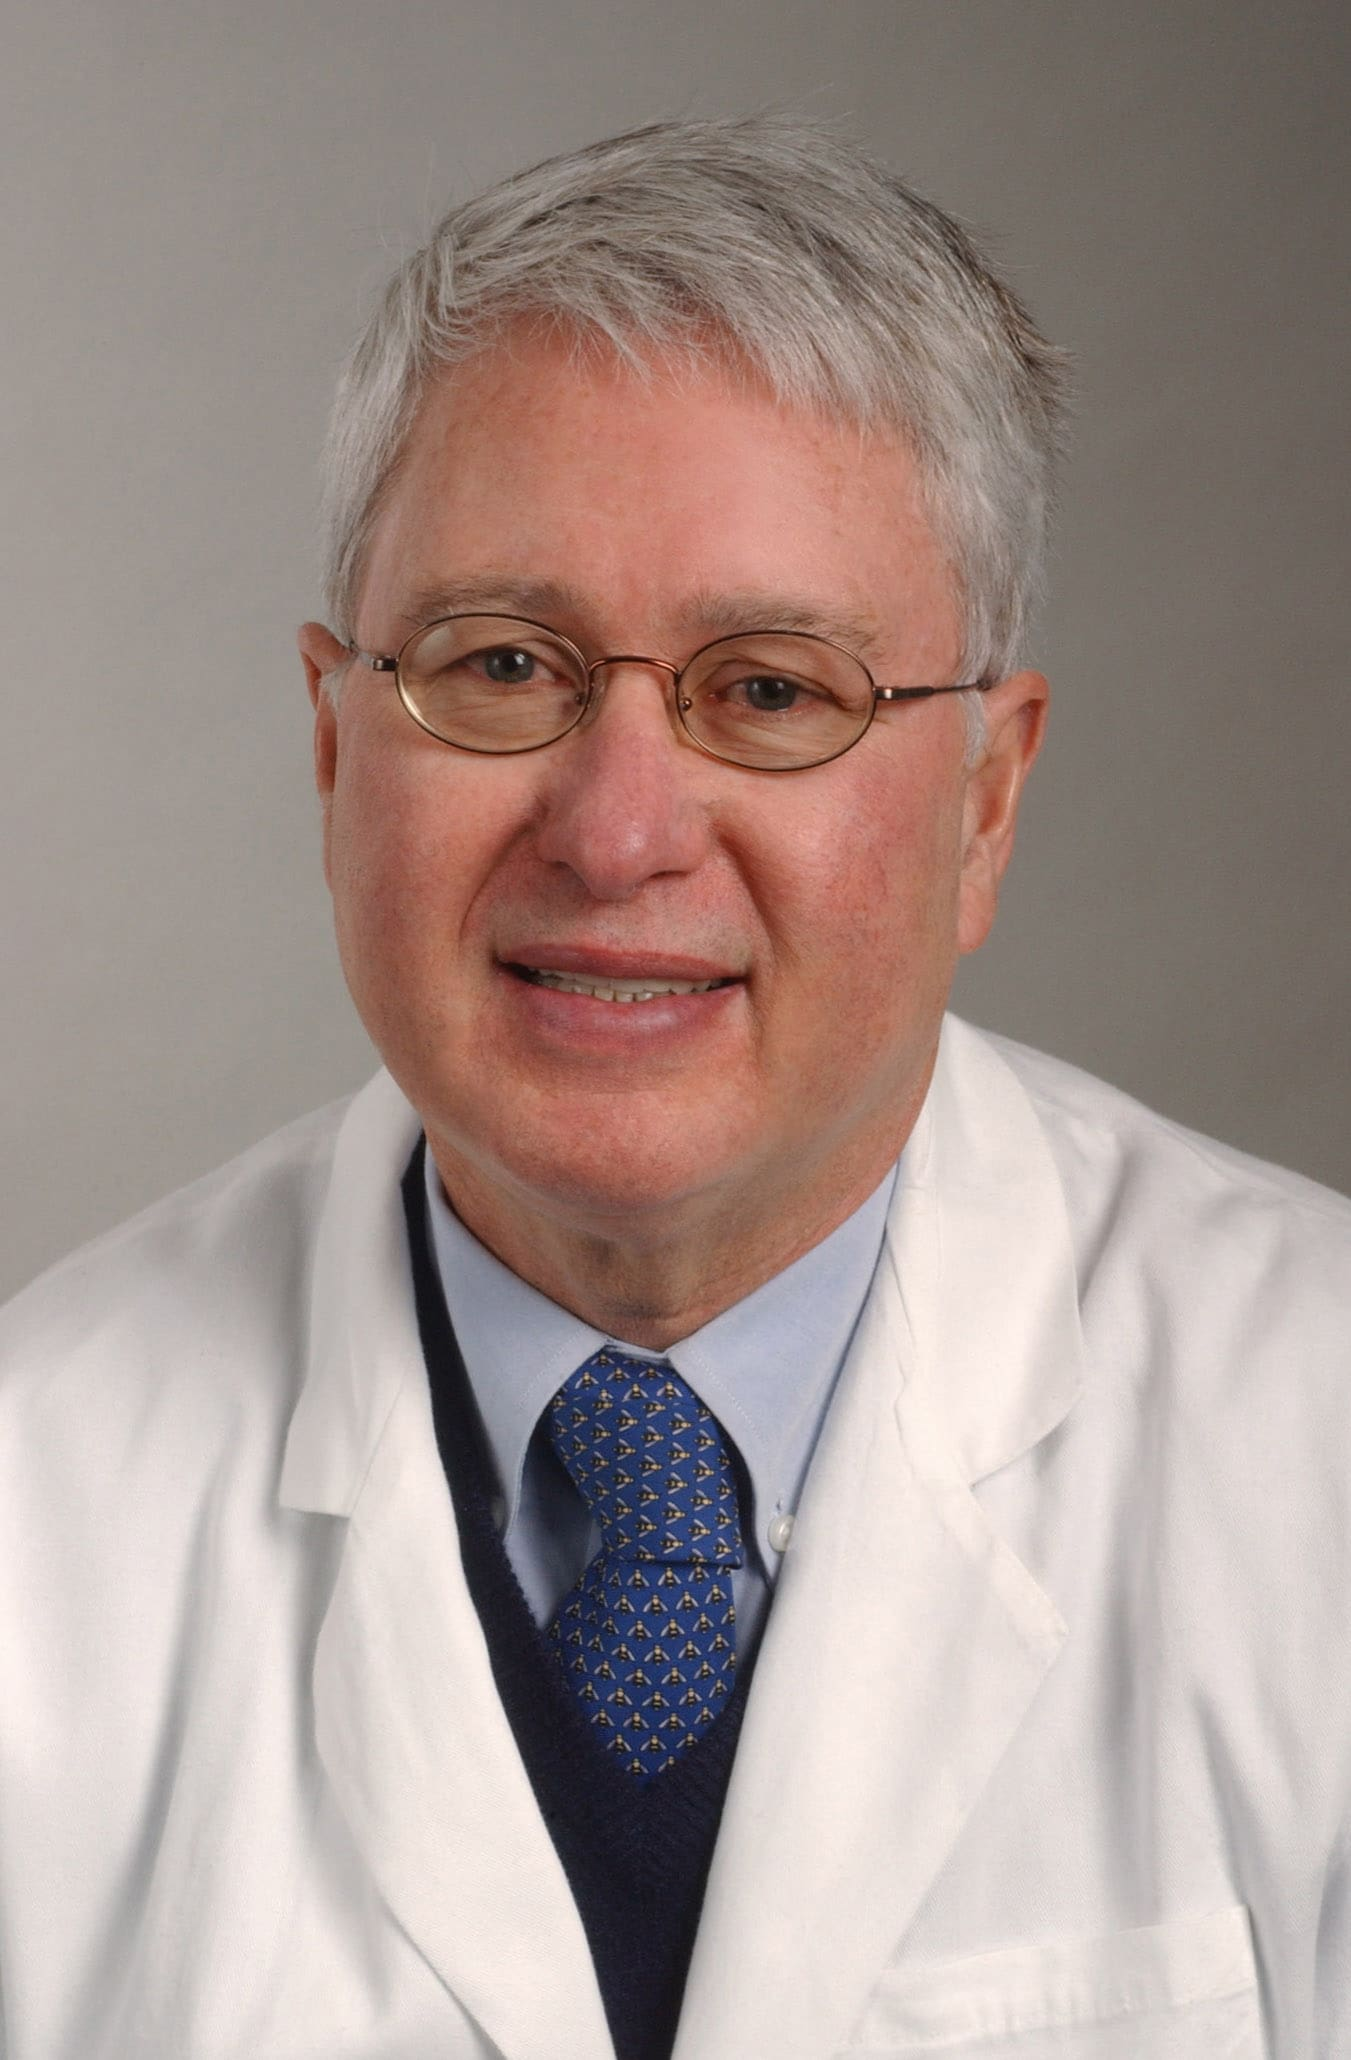 Dr. James R Sowers MD